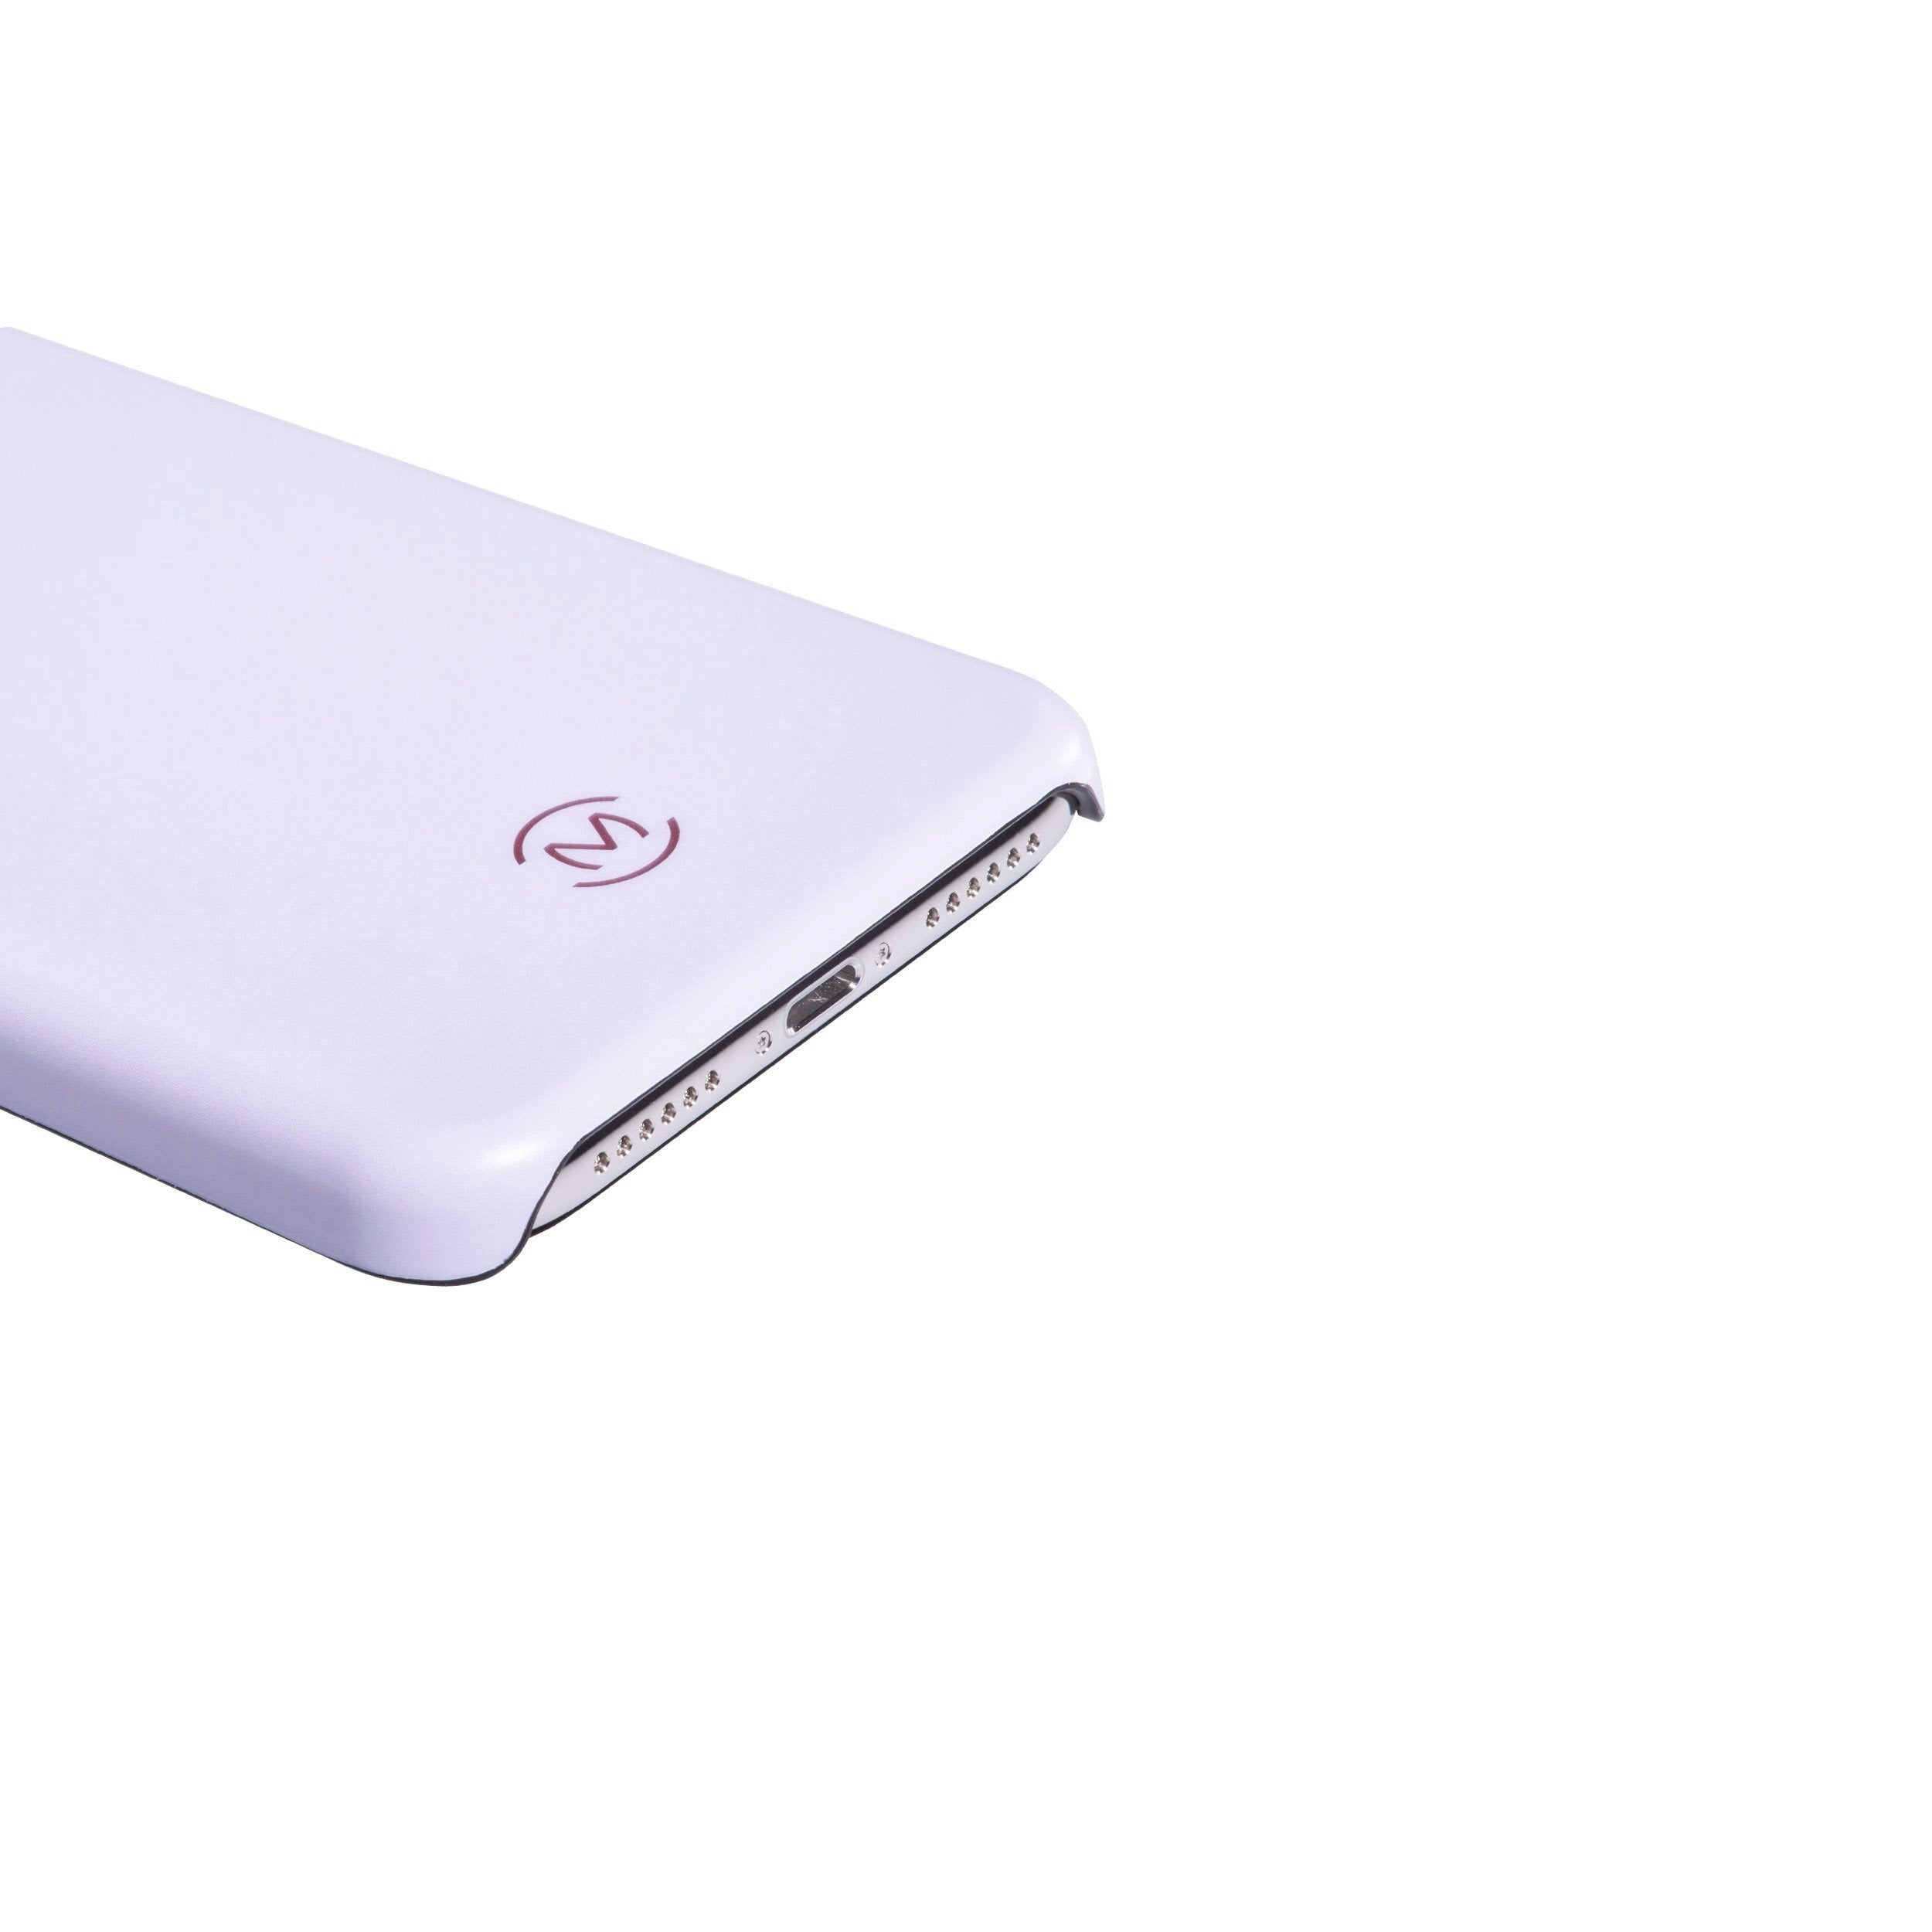 Lavender Matte Moonstone Phone Case by Movement for iPhone X (Flat)